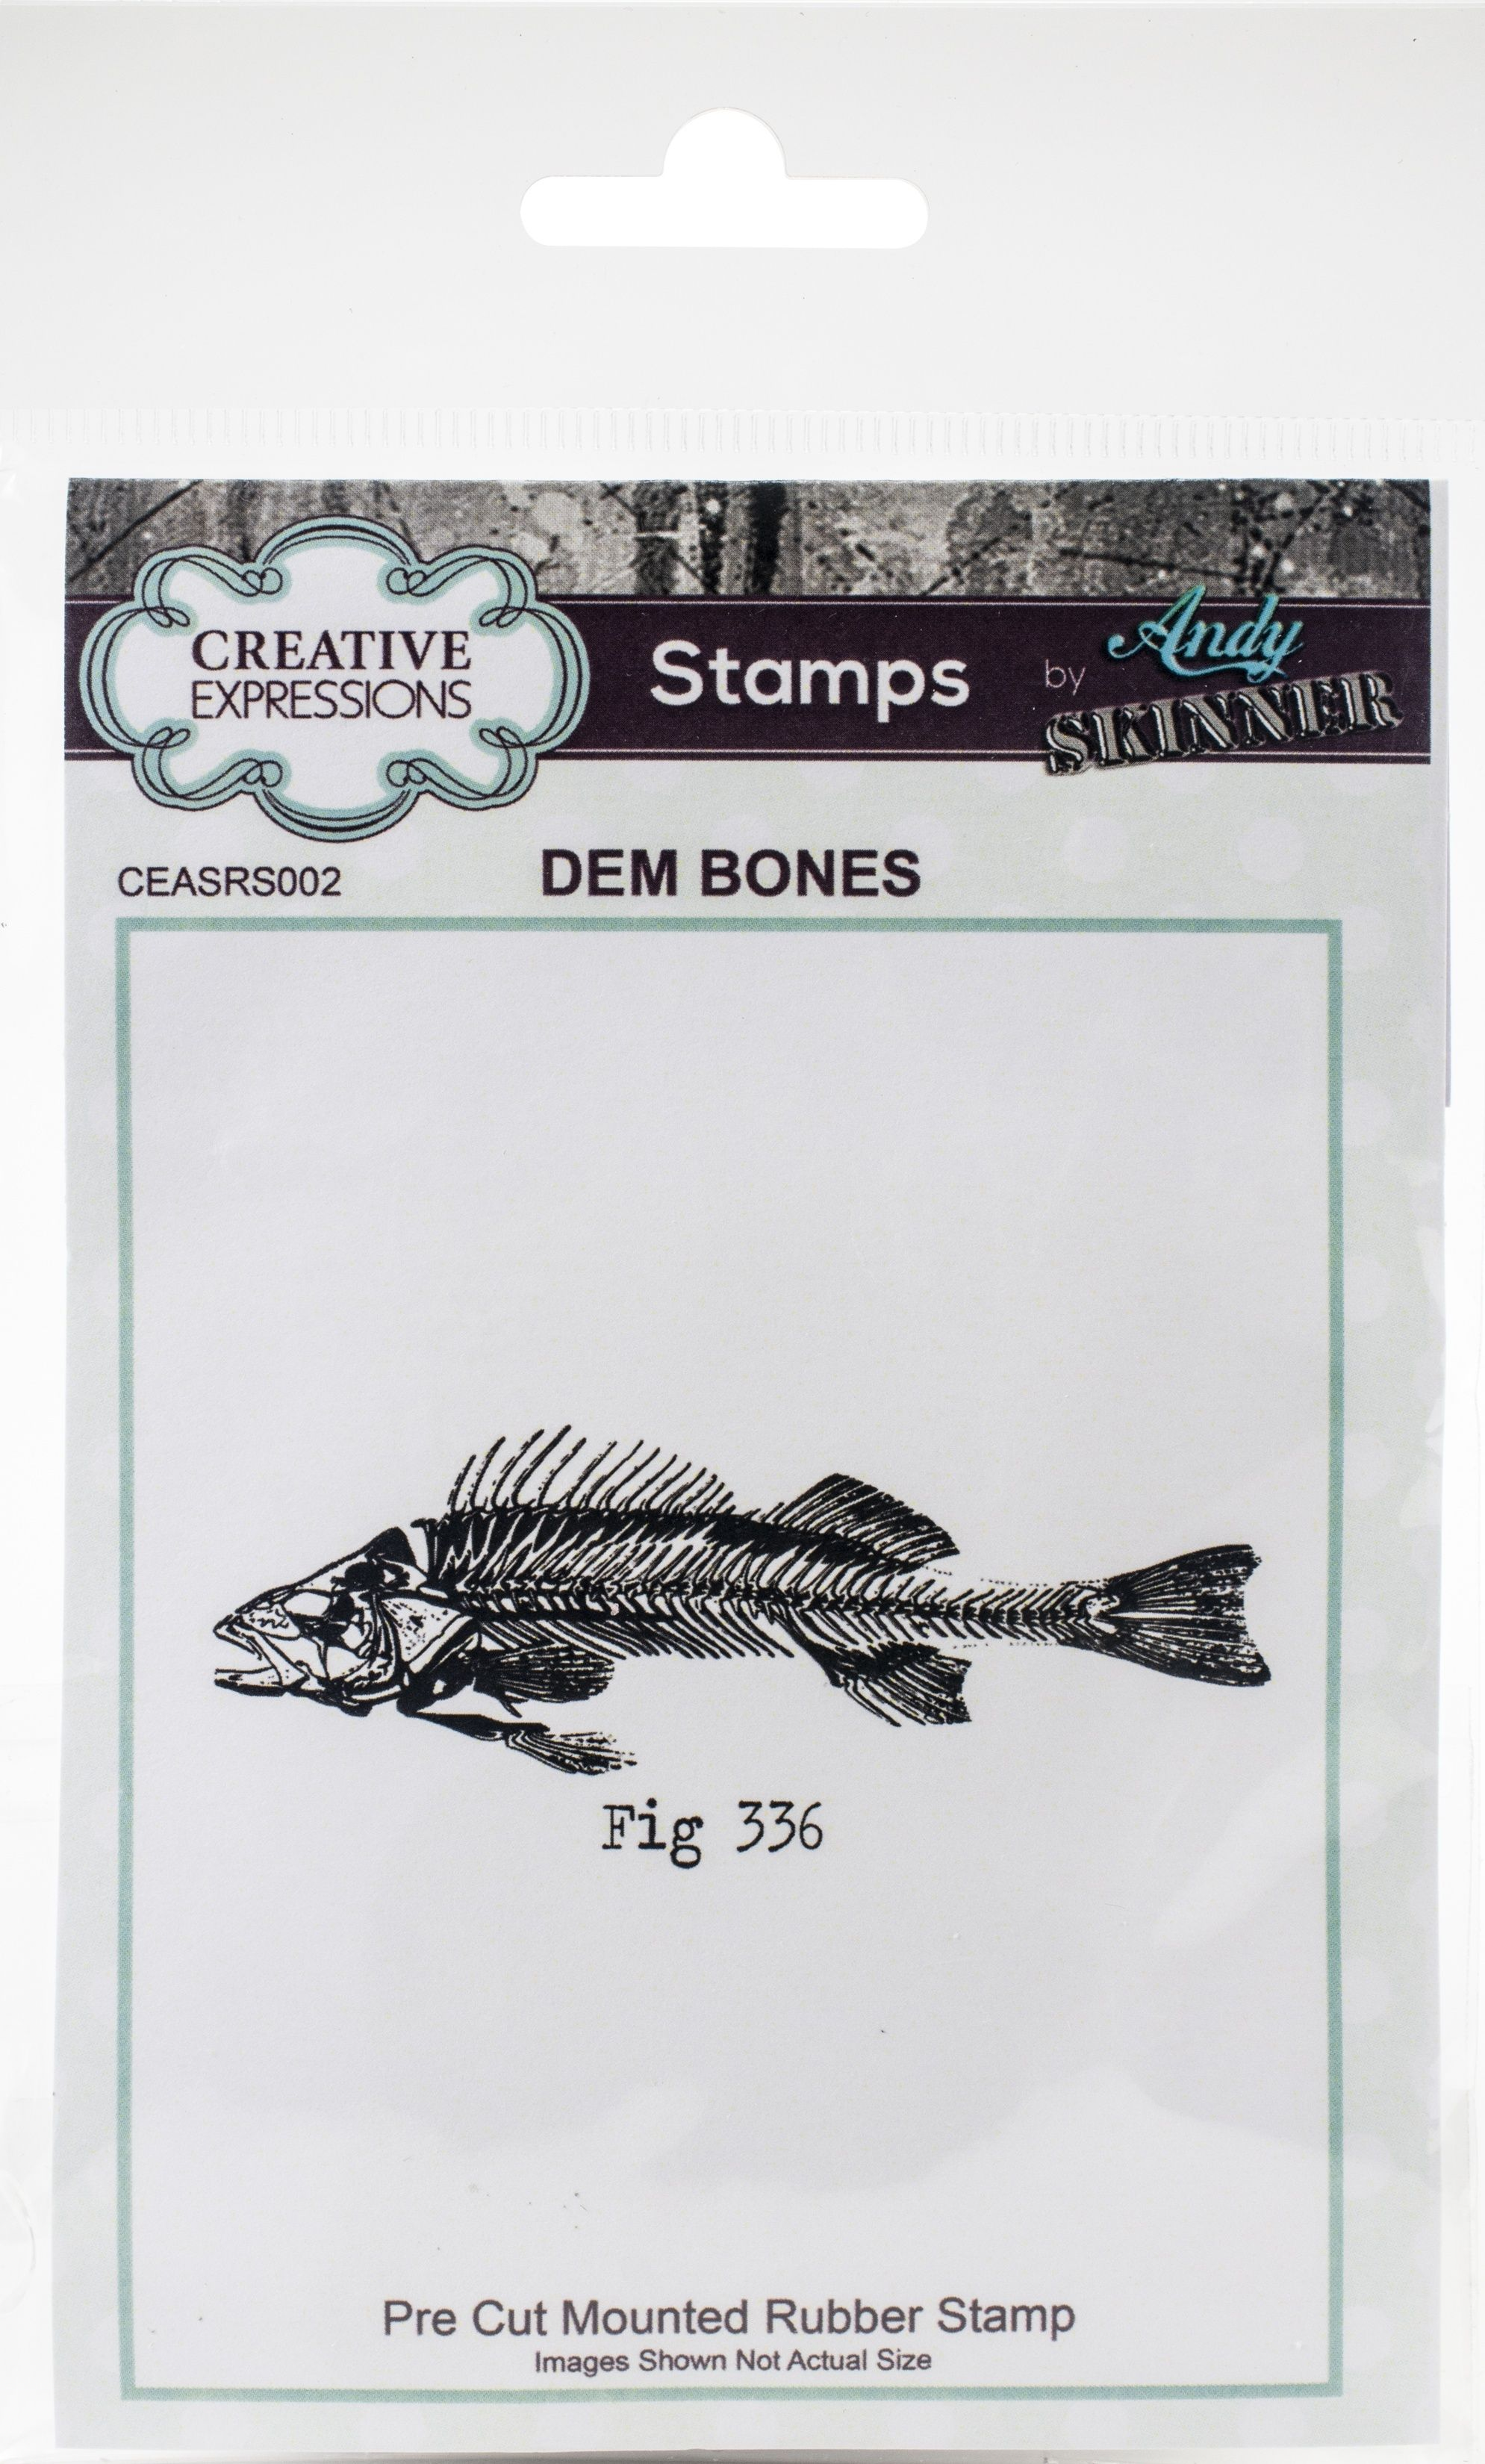 Creative Expressions Rubber Stamp By Andy Skinner - Dem Bones - High quality stamps are perfect for cardmaking and scrapbooking. This package contains Dem Bones: one stamp on a 4x5.75 inch backing sheet. Imported.. SKU: .